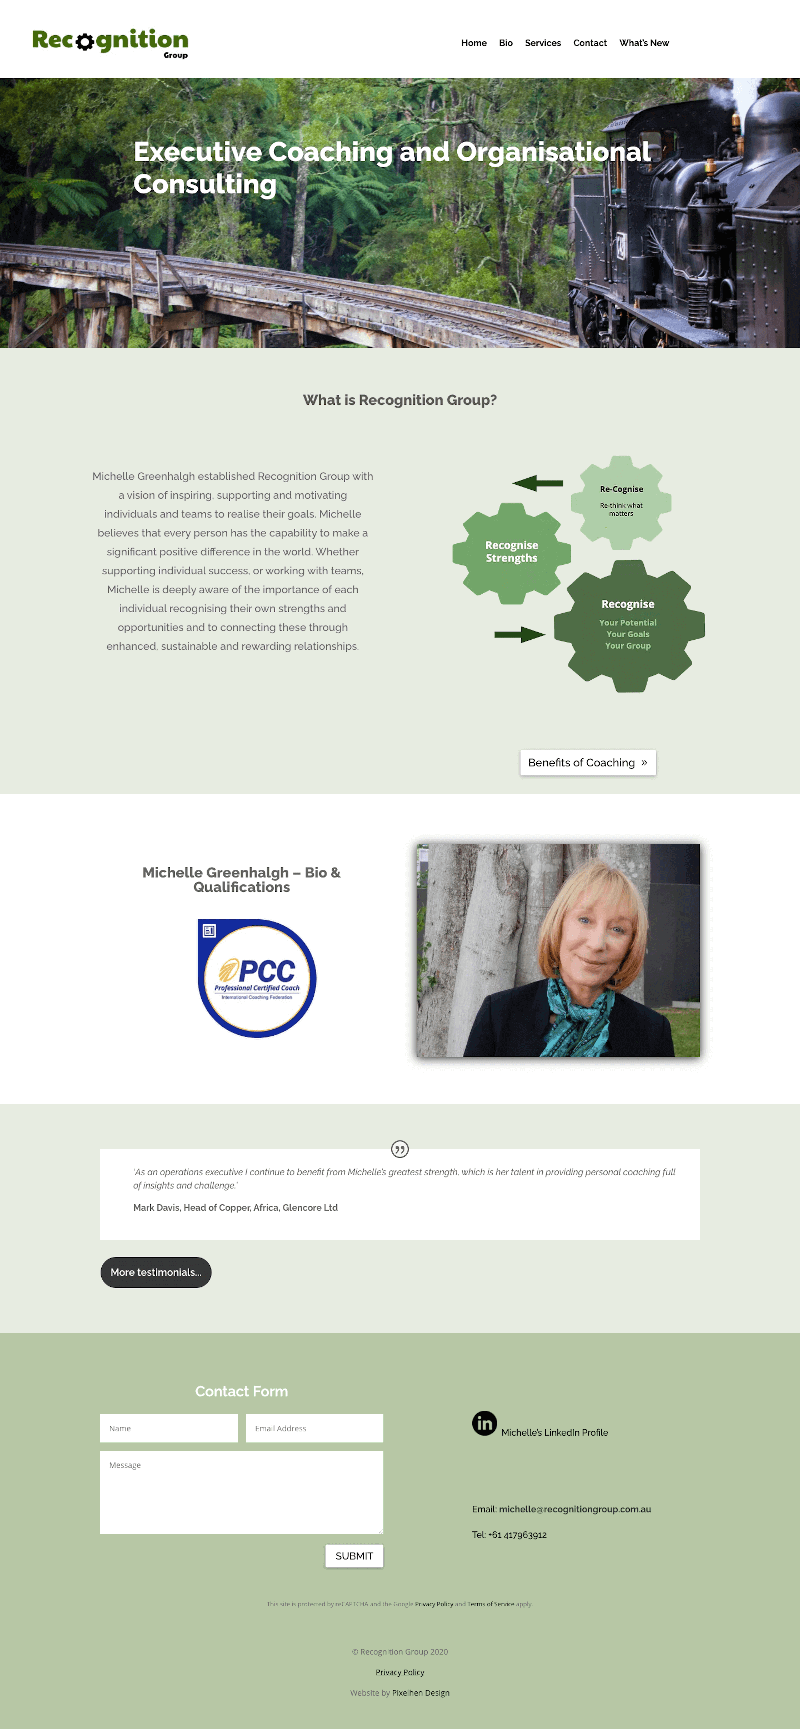 Image showing fullscreen display of Recognition Group site build by Pixelhen Design